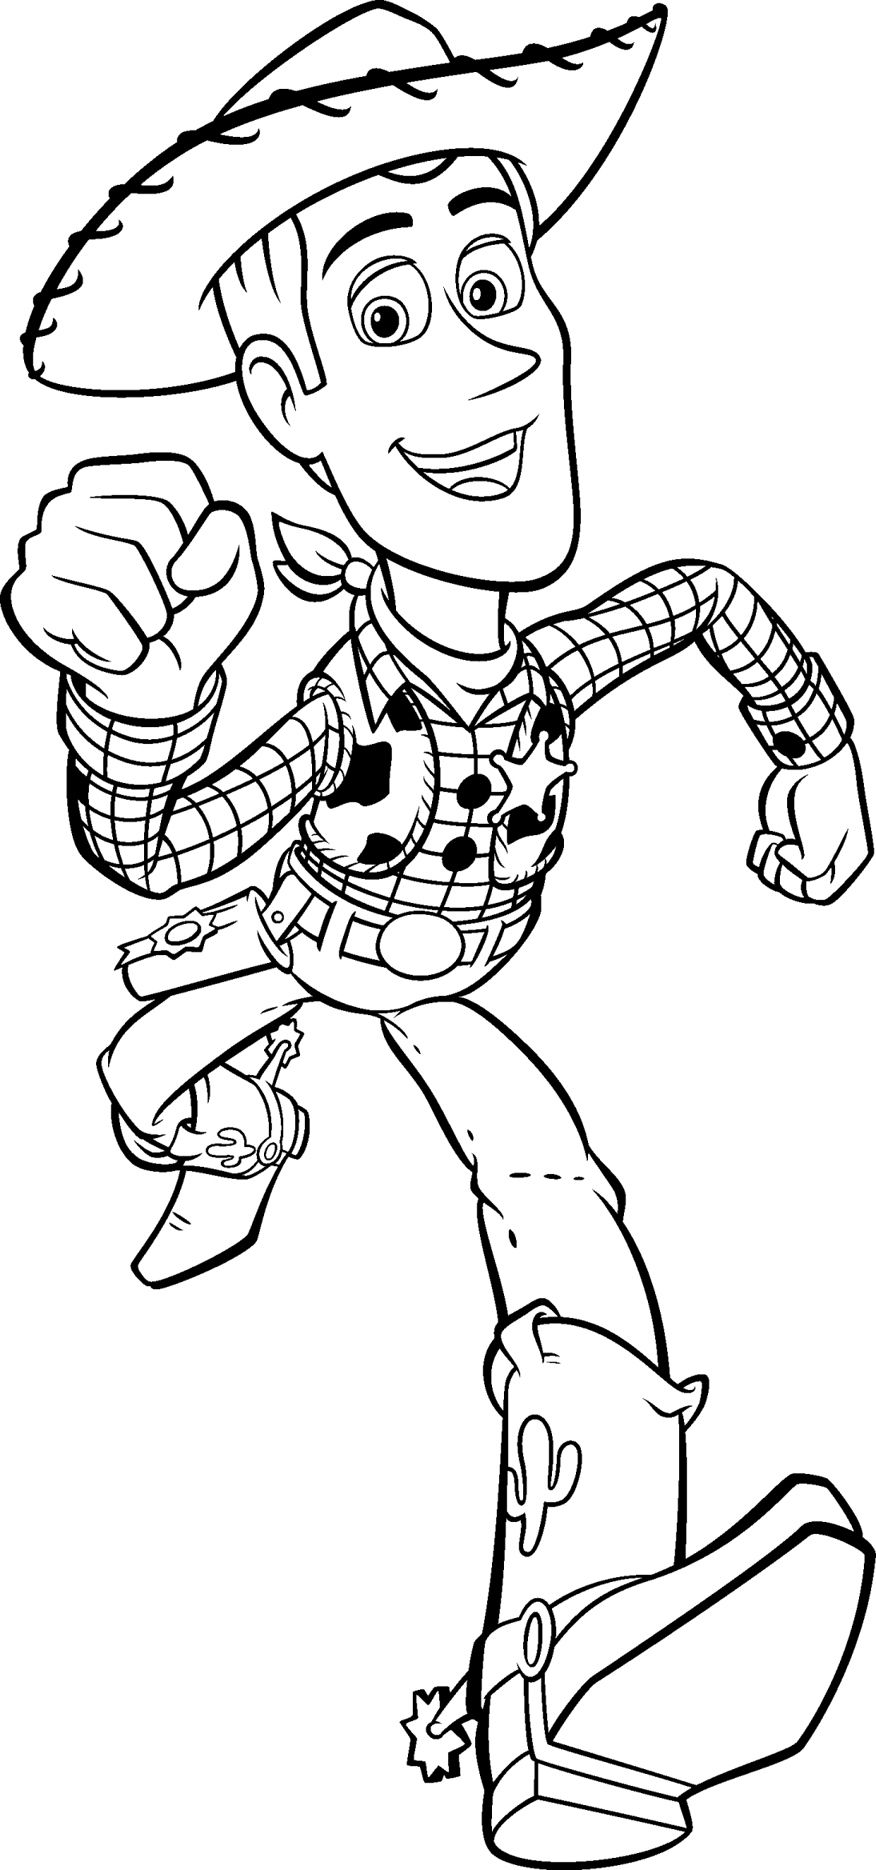 Toy Story Coloring Pages Free Disney Coloring Pages Disney